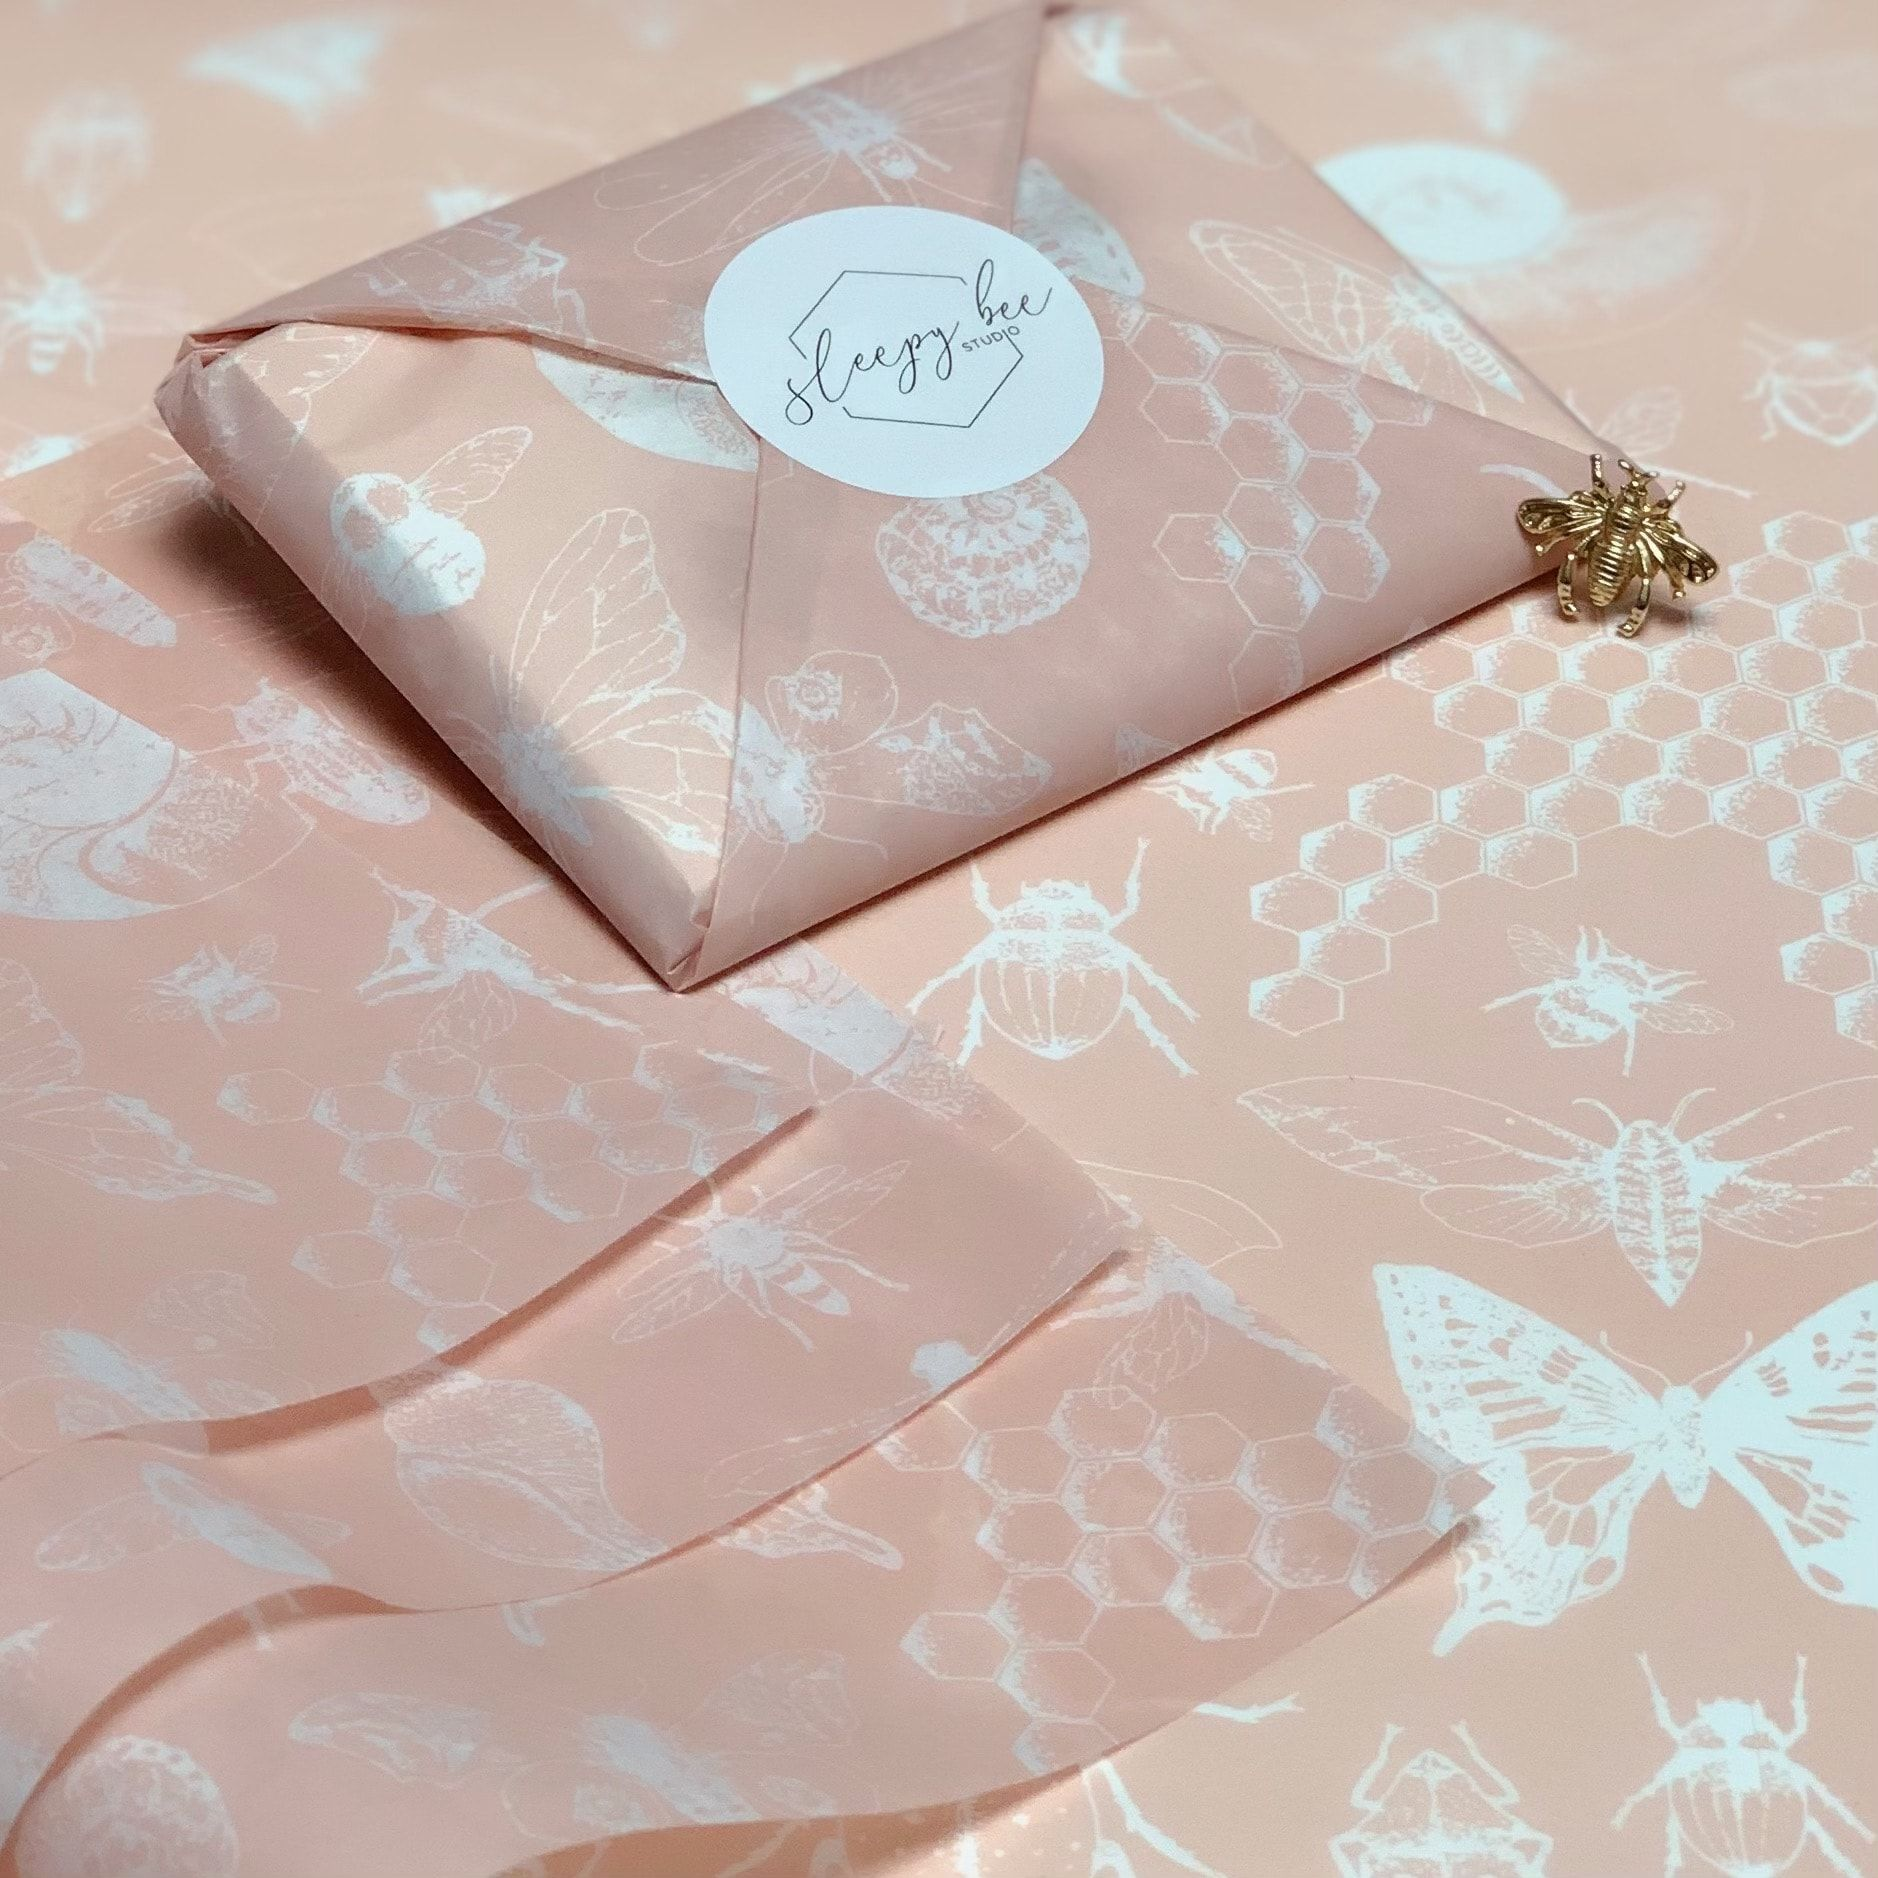 Sleepy Bee Studio: A Tale of Four Bespoke Tissue Paper Designs